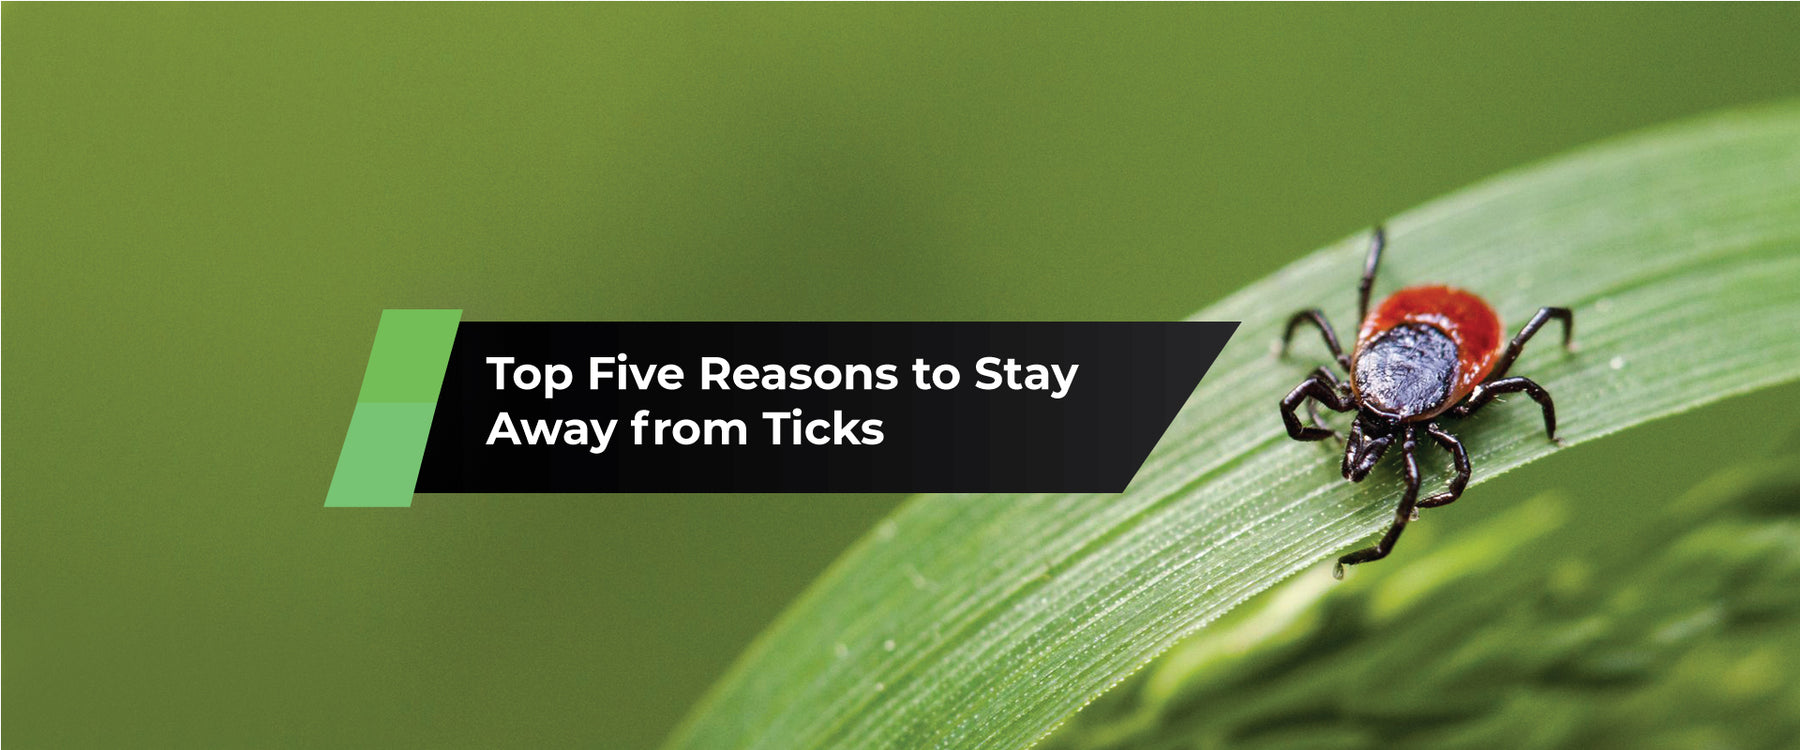 Top Five Reasons to Stay Away from Ticks